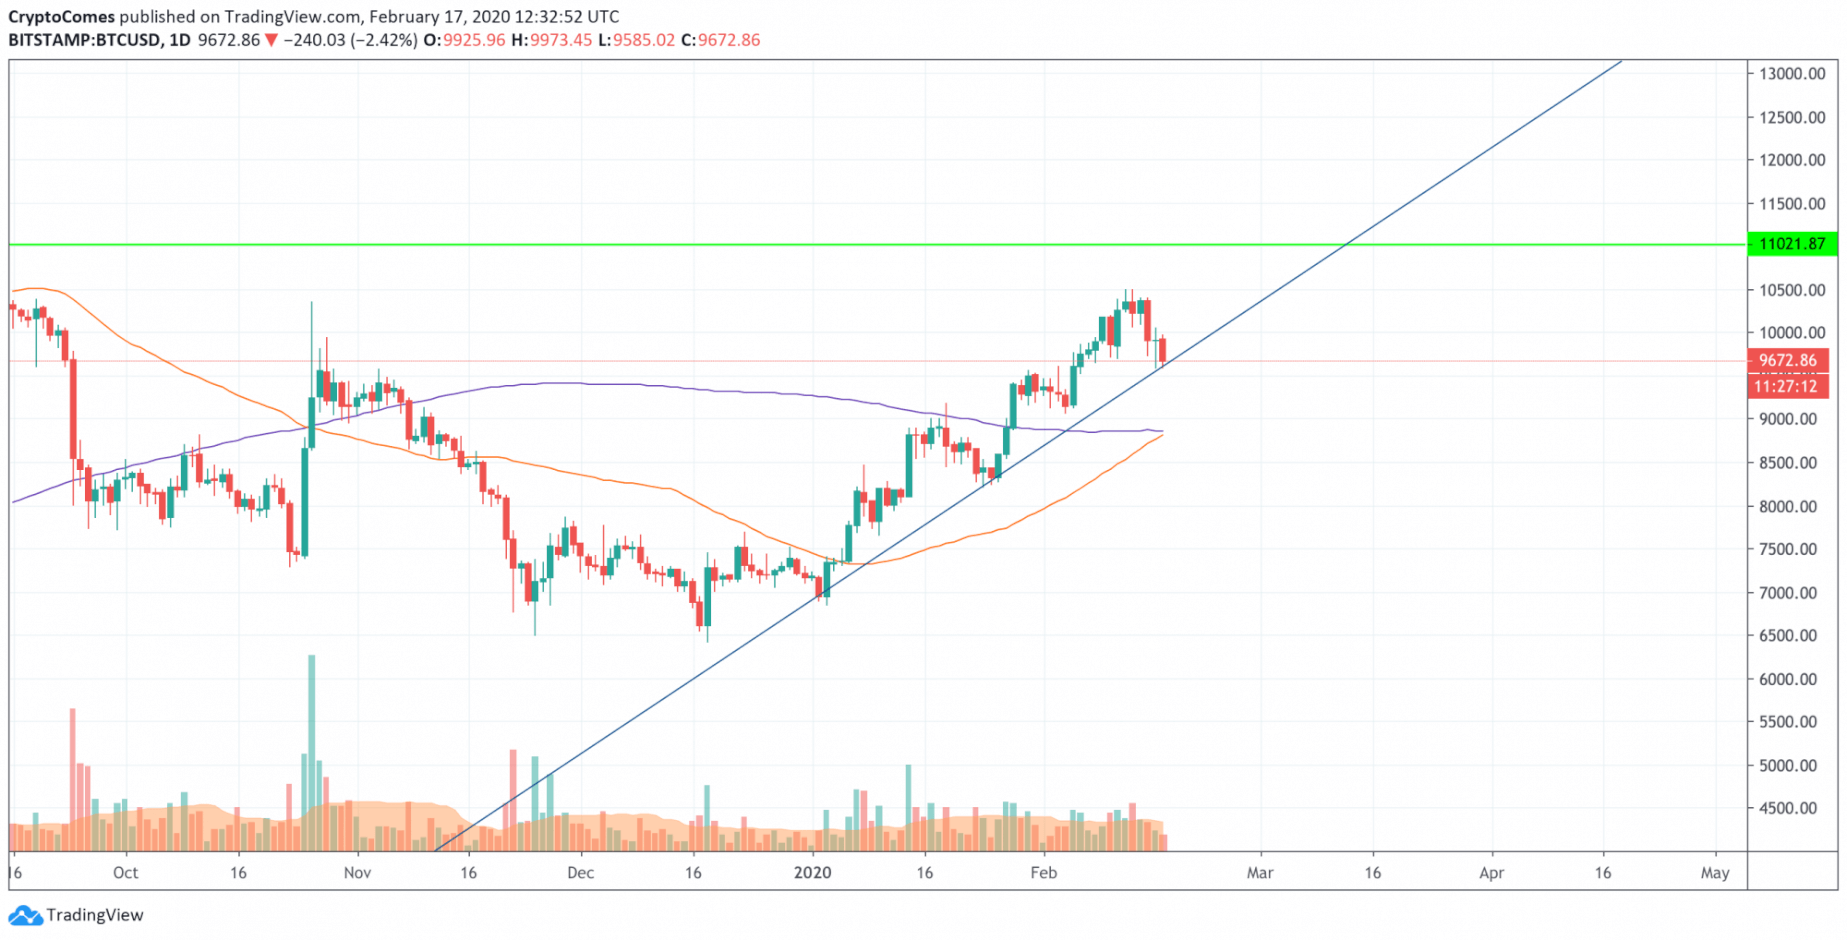 BTC, ETH, XRP - Has the correction period passed? 26